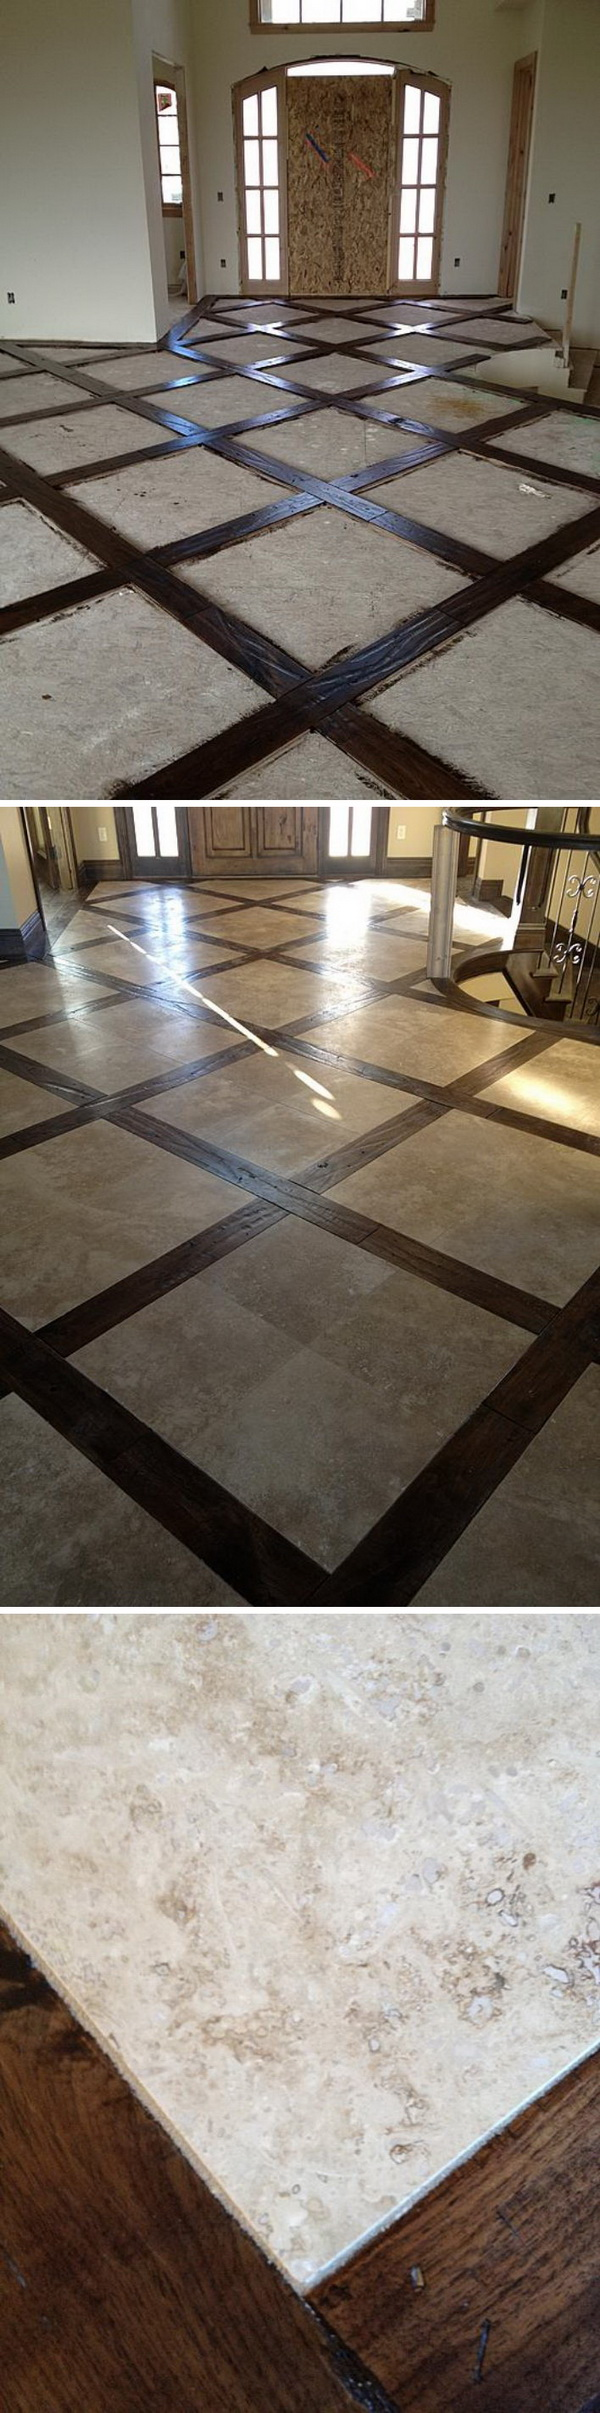 30 awesome flooring ideas for every room hative rh hative com tile flooring ideas for living room tile flooring ideas for kitchen